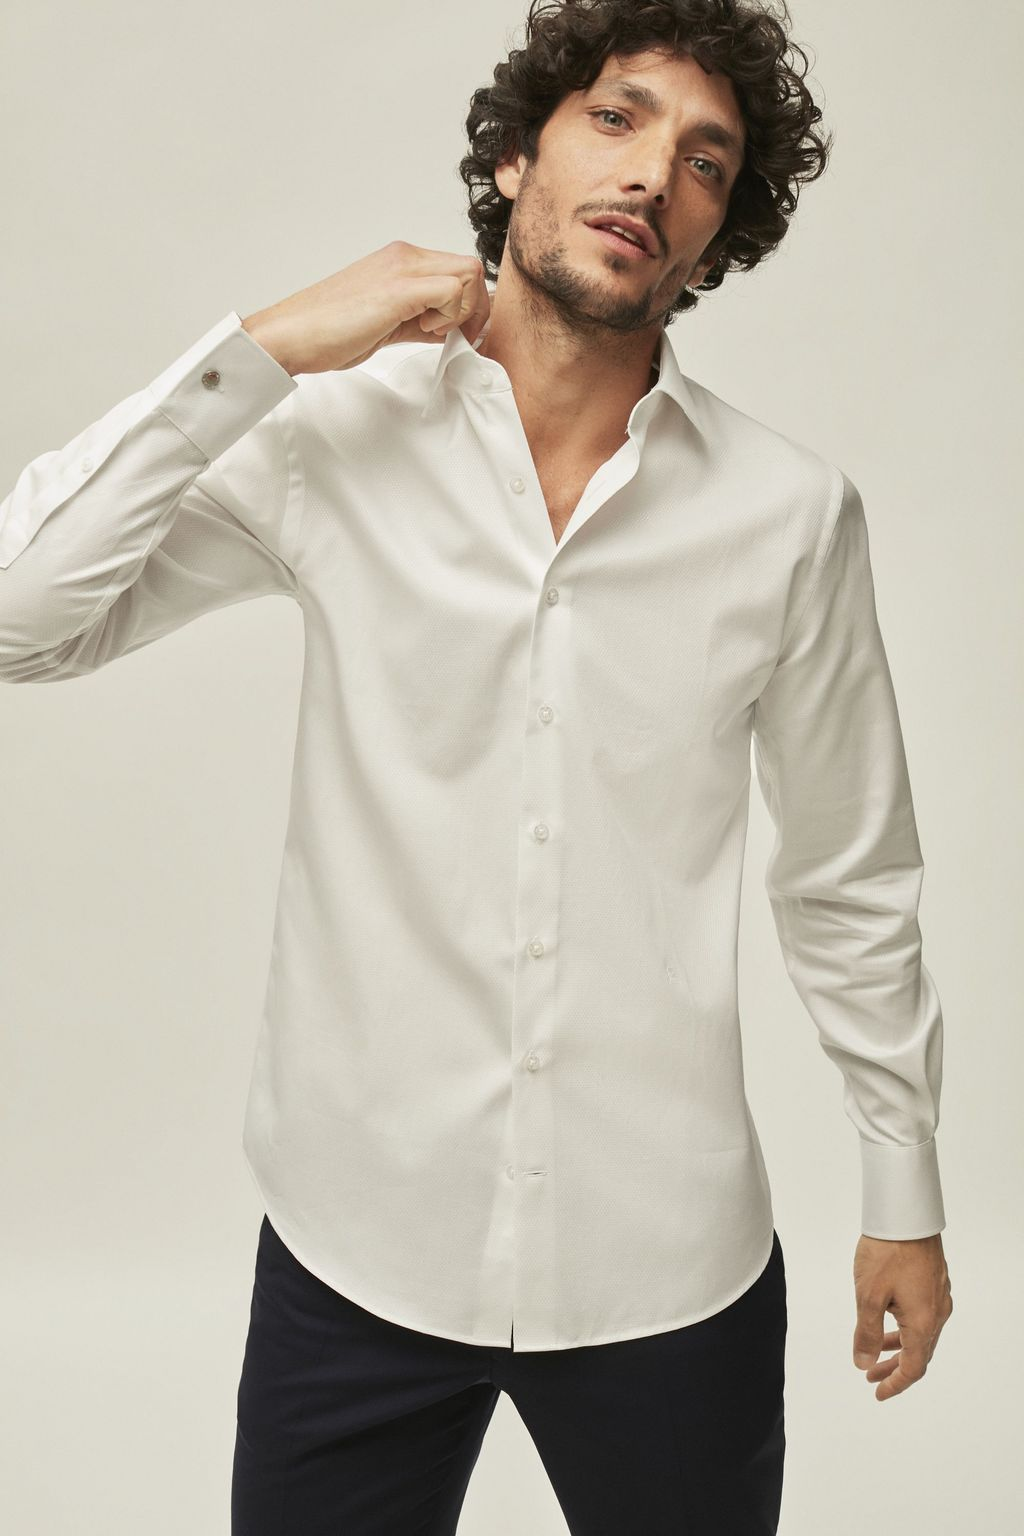 Structured shirt with spread collar